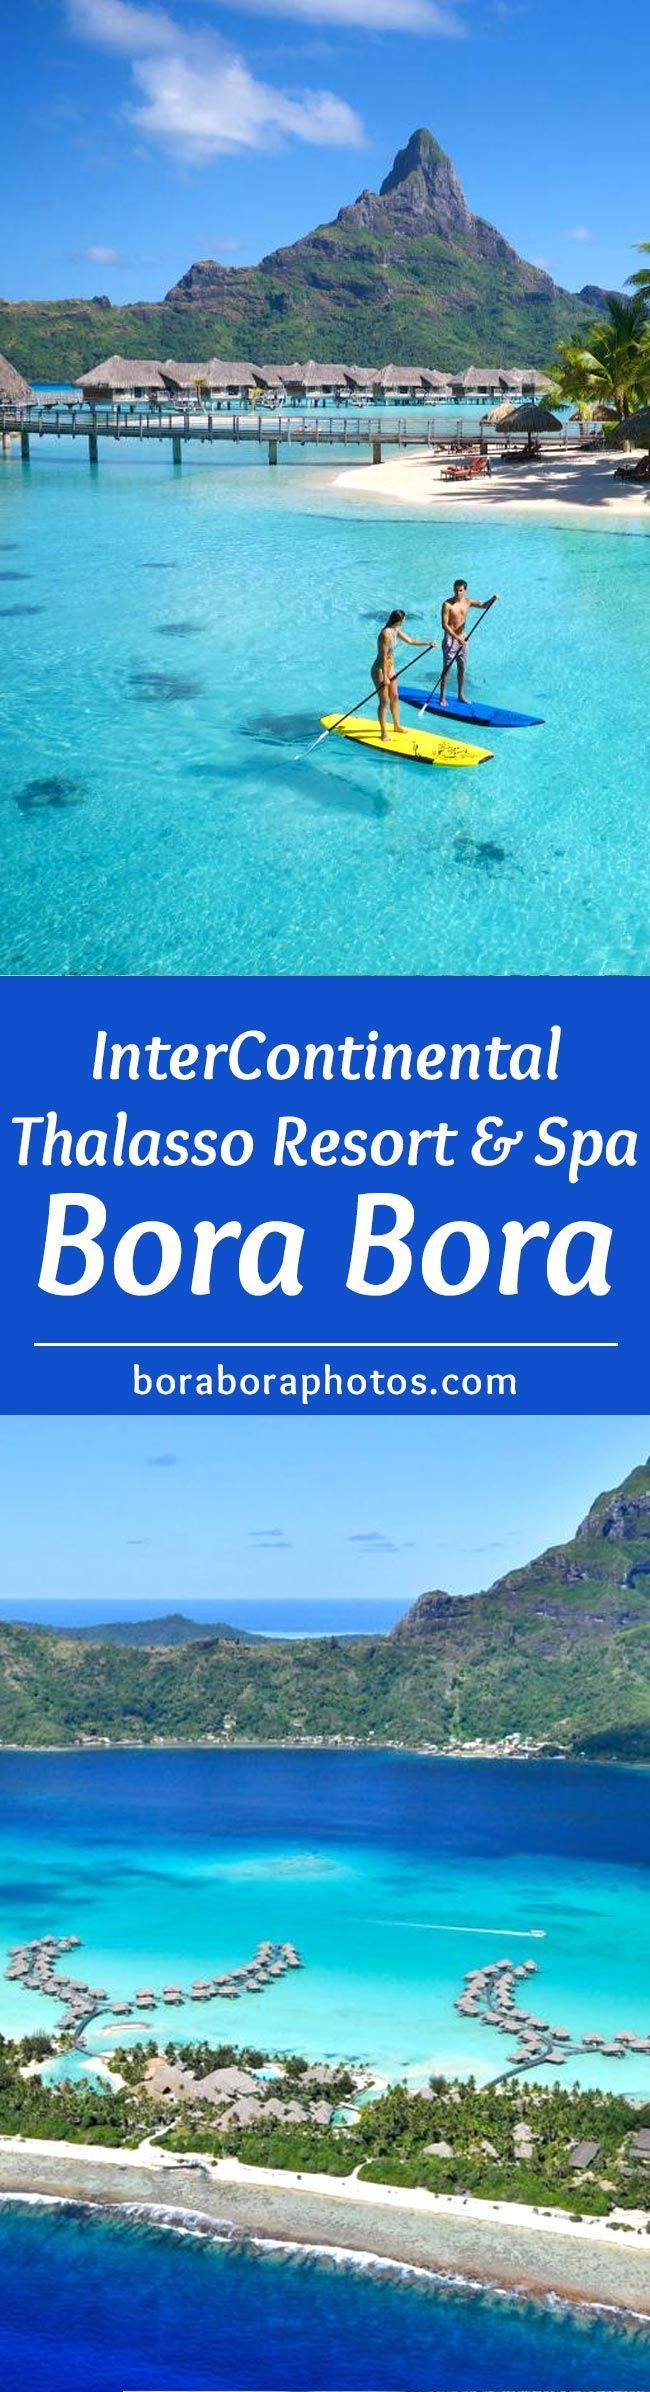 InterContinental Thalasso Resort & Spa - Set on an islet overlooking the Bora Bora lagoon, this upscale beachfront resort features thatched roofs and vaulted ceilings, the luxury villas are built on stilts over the water. Incredible place to honeymoon or vacation.